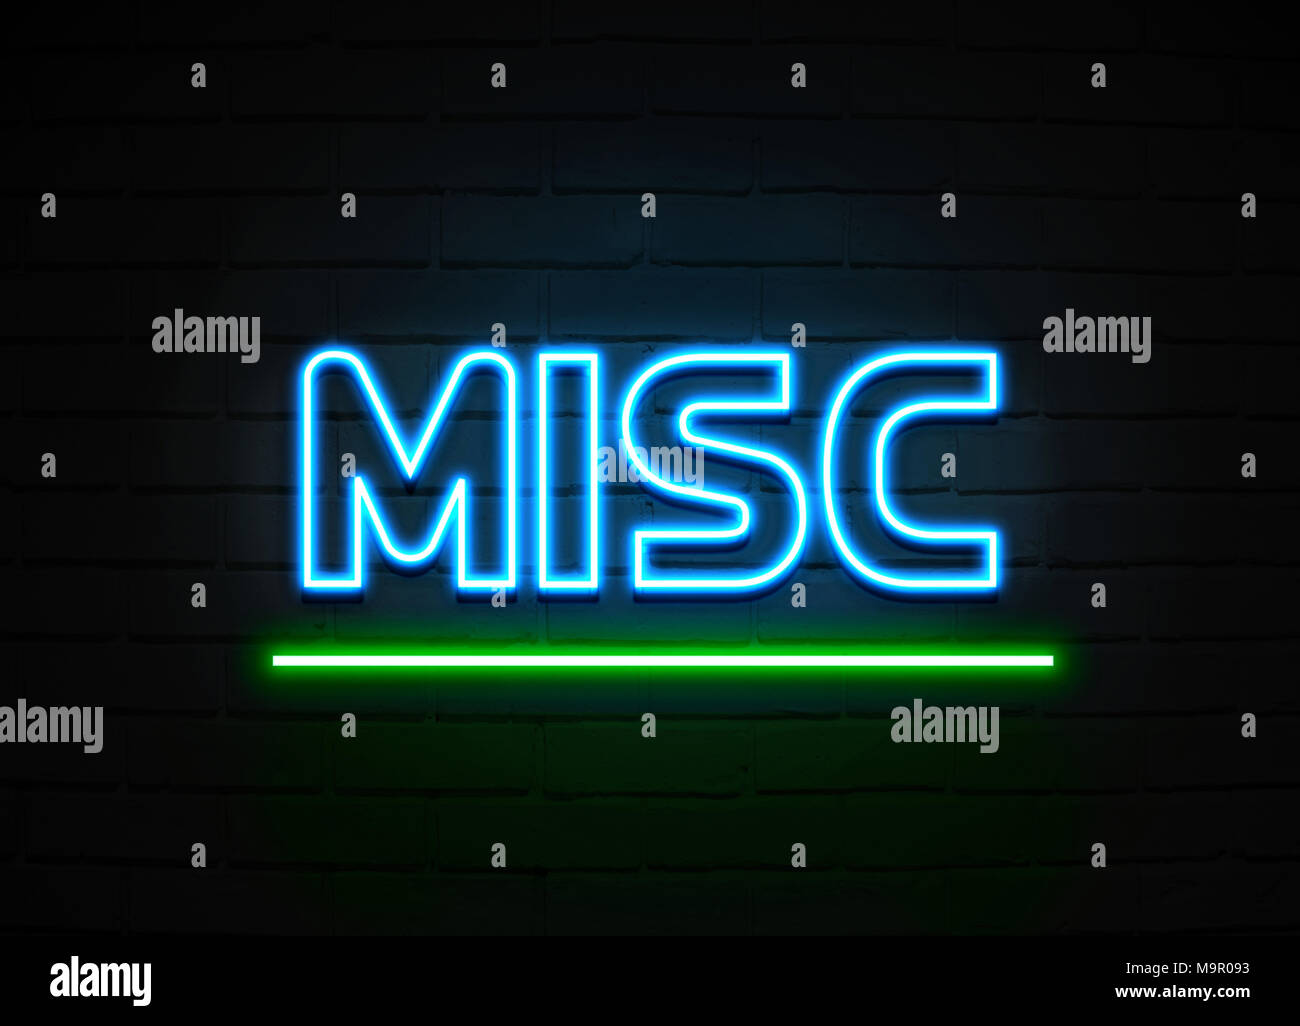 Misc neon sign - Glowing Neon Sign on brickwall wall - 3D rendered royalty free stock illustration. - Stock Image